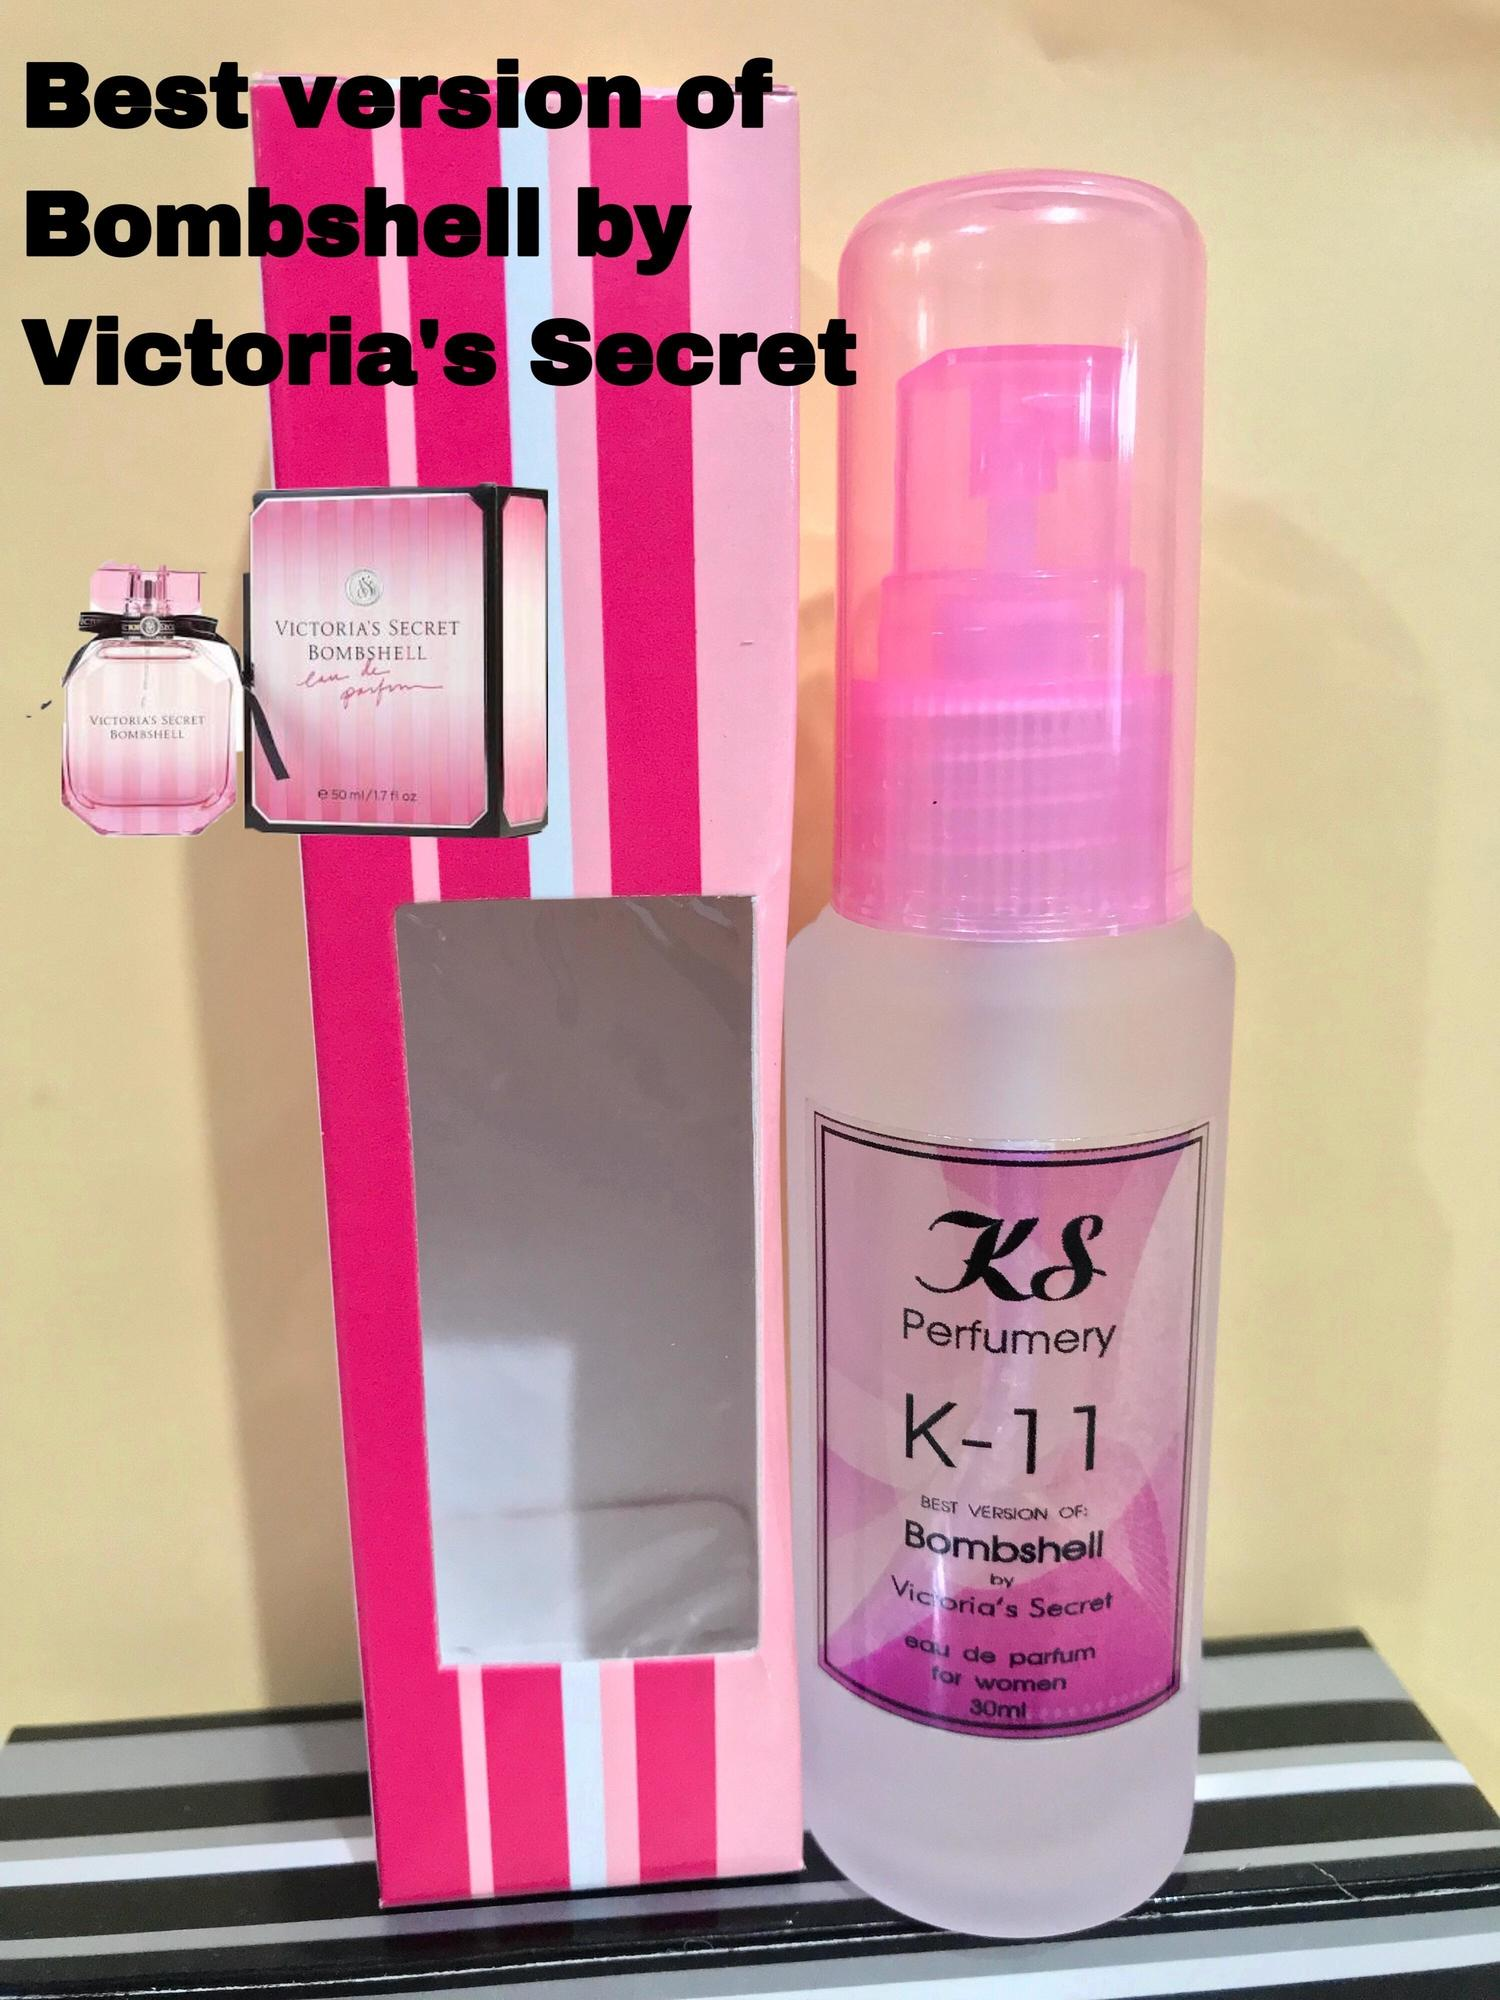 KS Perfumery Code: K-11 Best version of Bombshell by Victoria's Secret 15% oil based 30ml comes with Window box Stripes